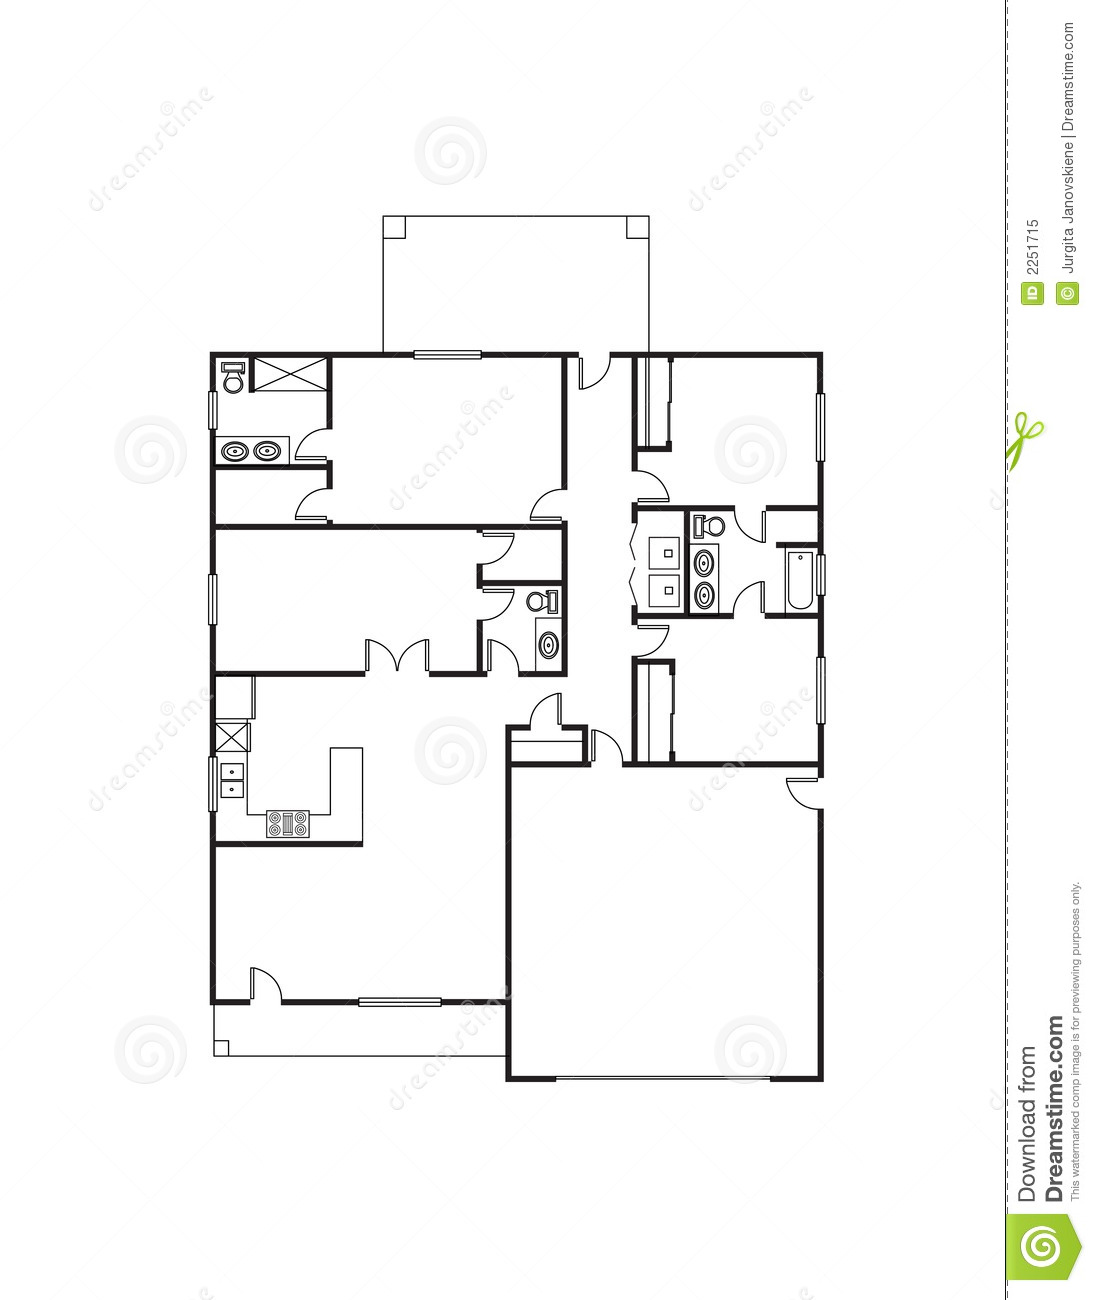 Single family house plans free single floor house plans for House design online